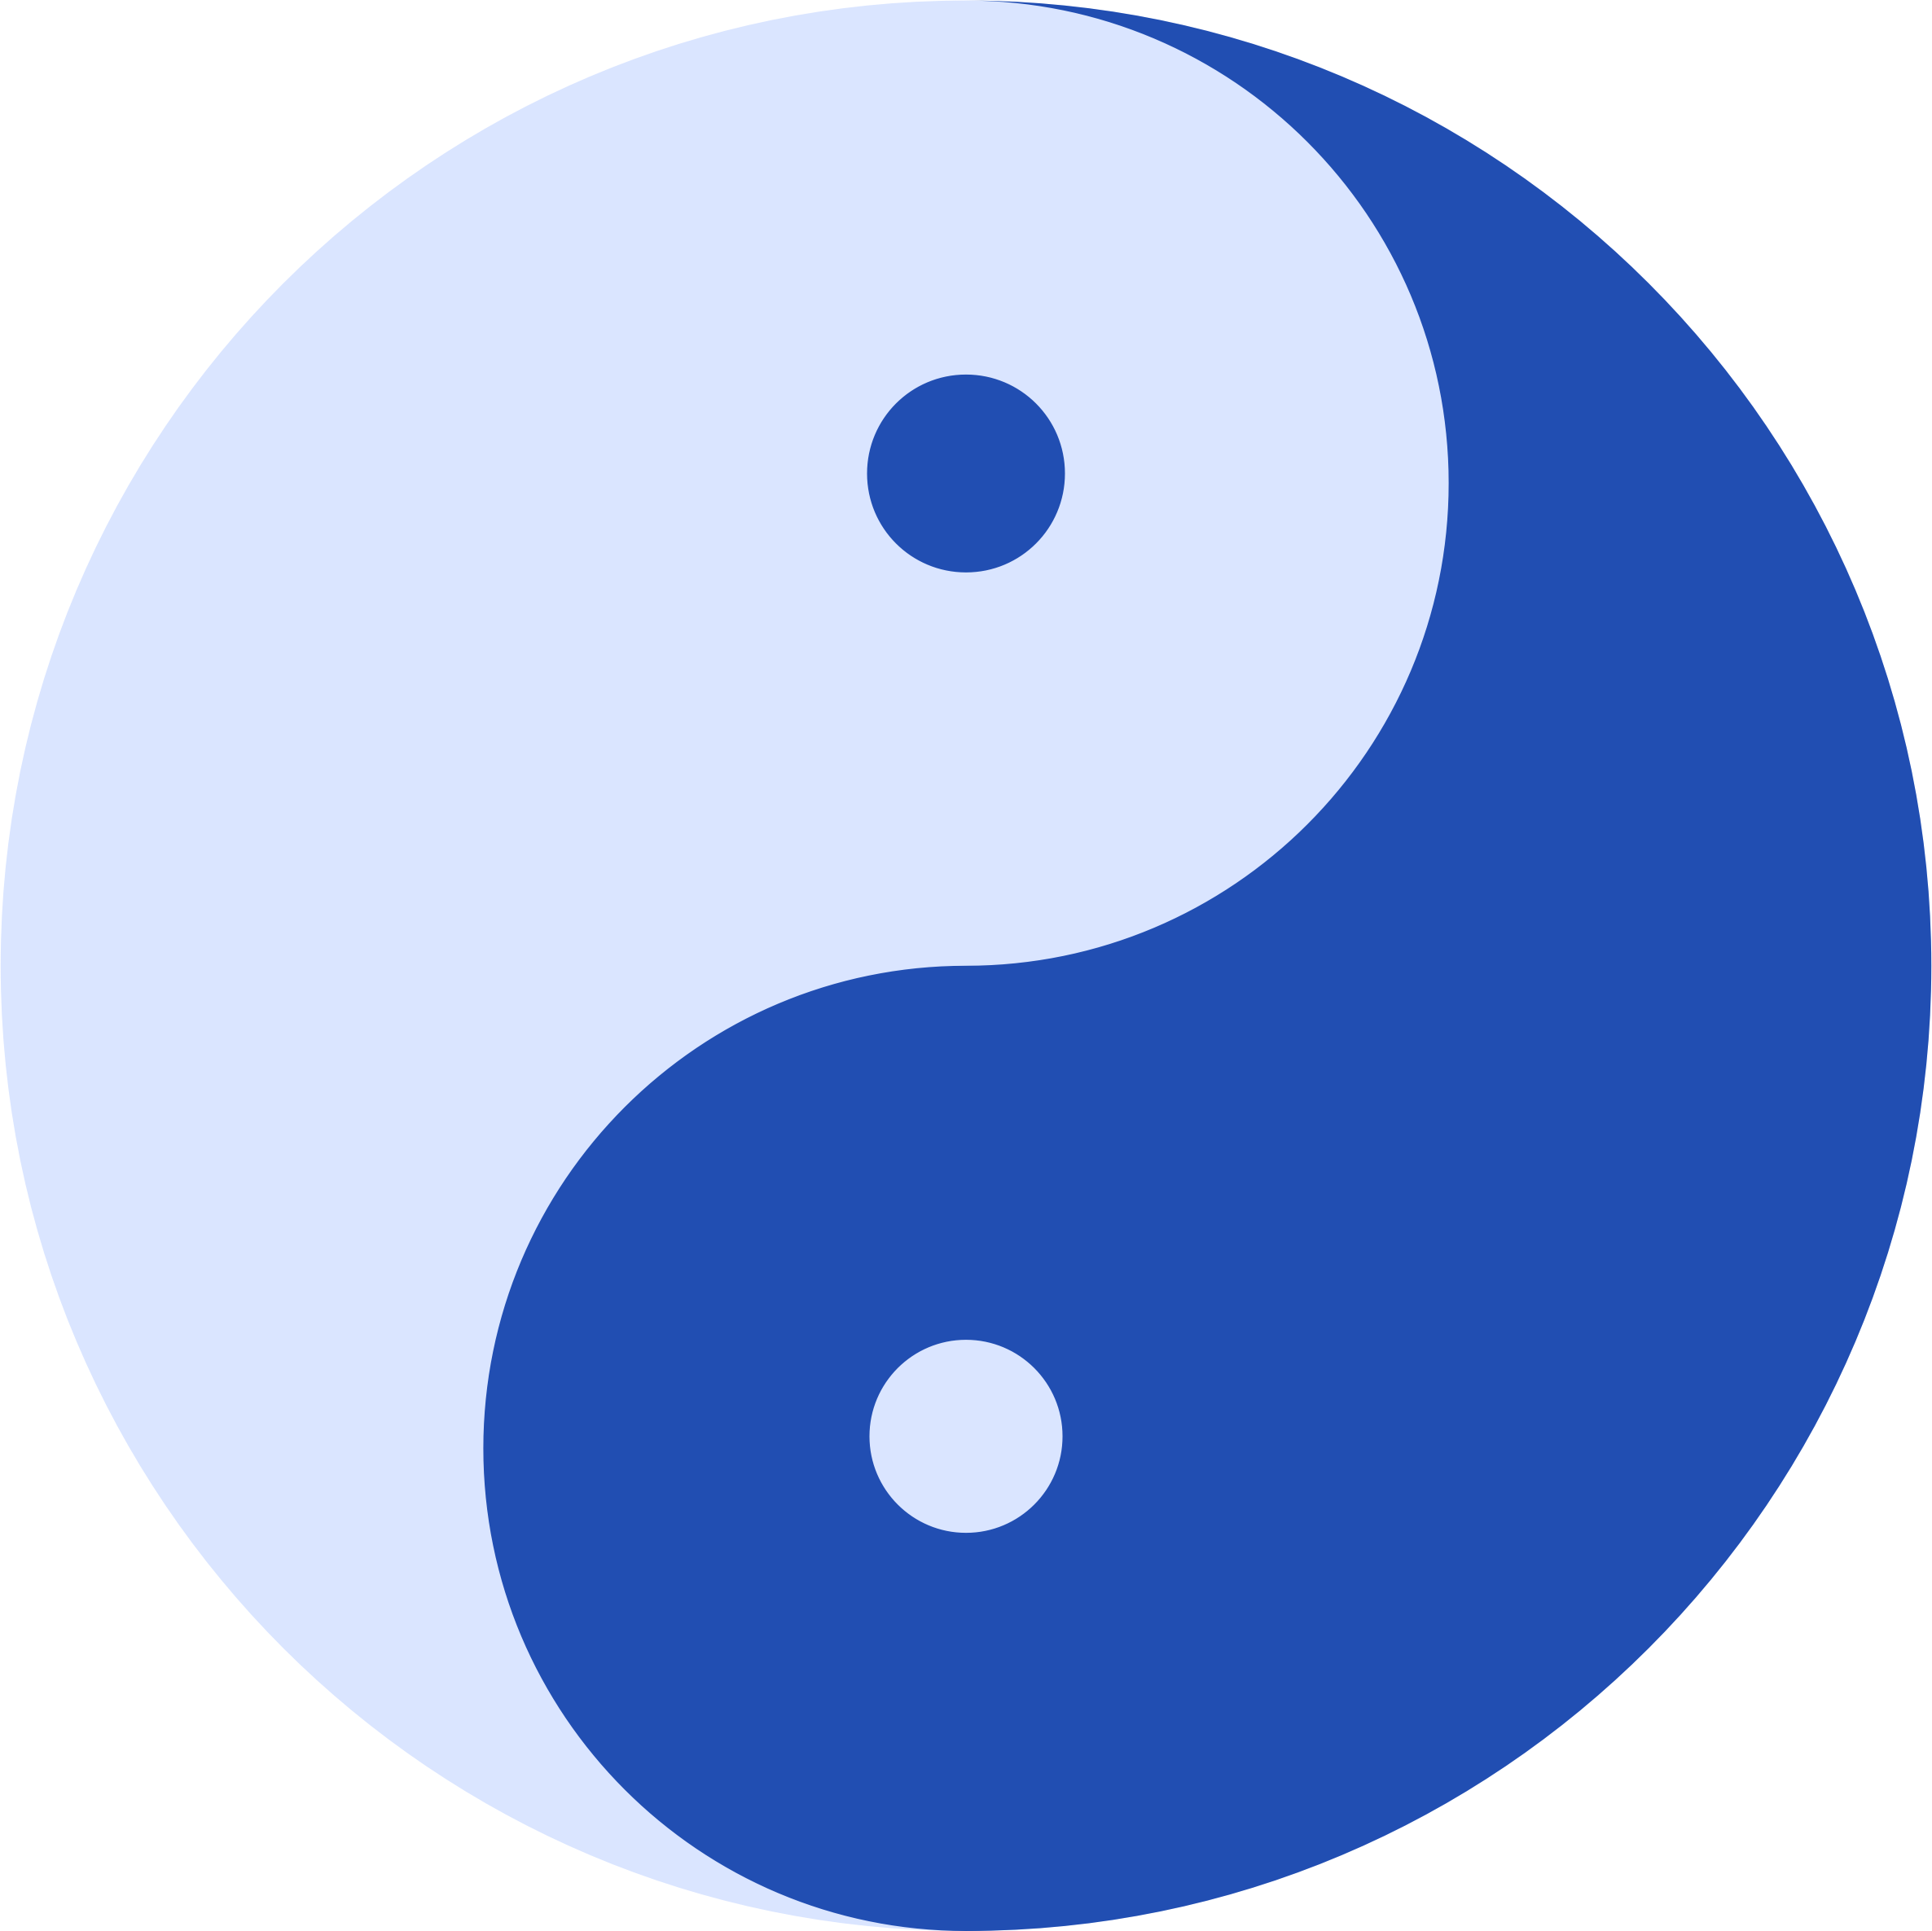 Blue Ying and Yang by AdamStanislav